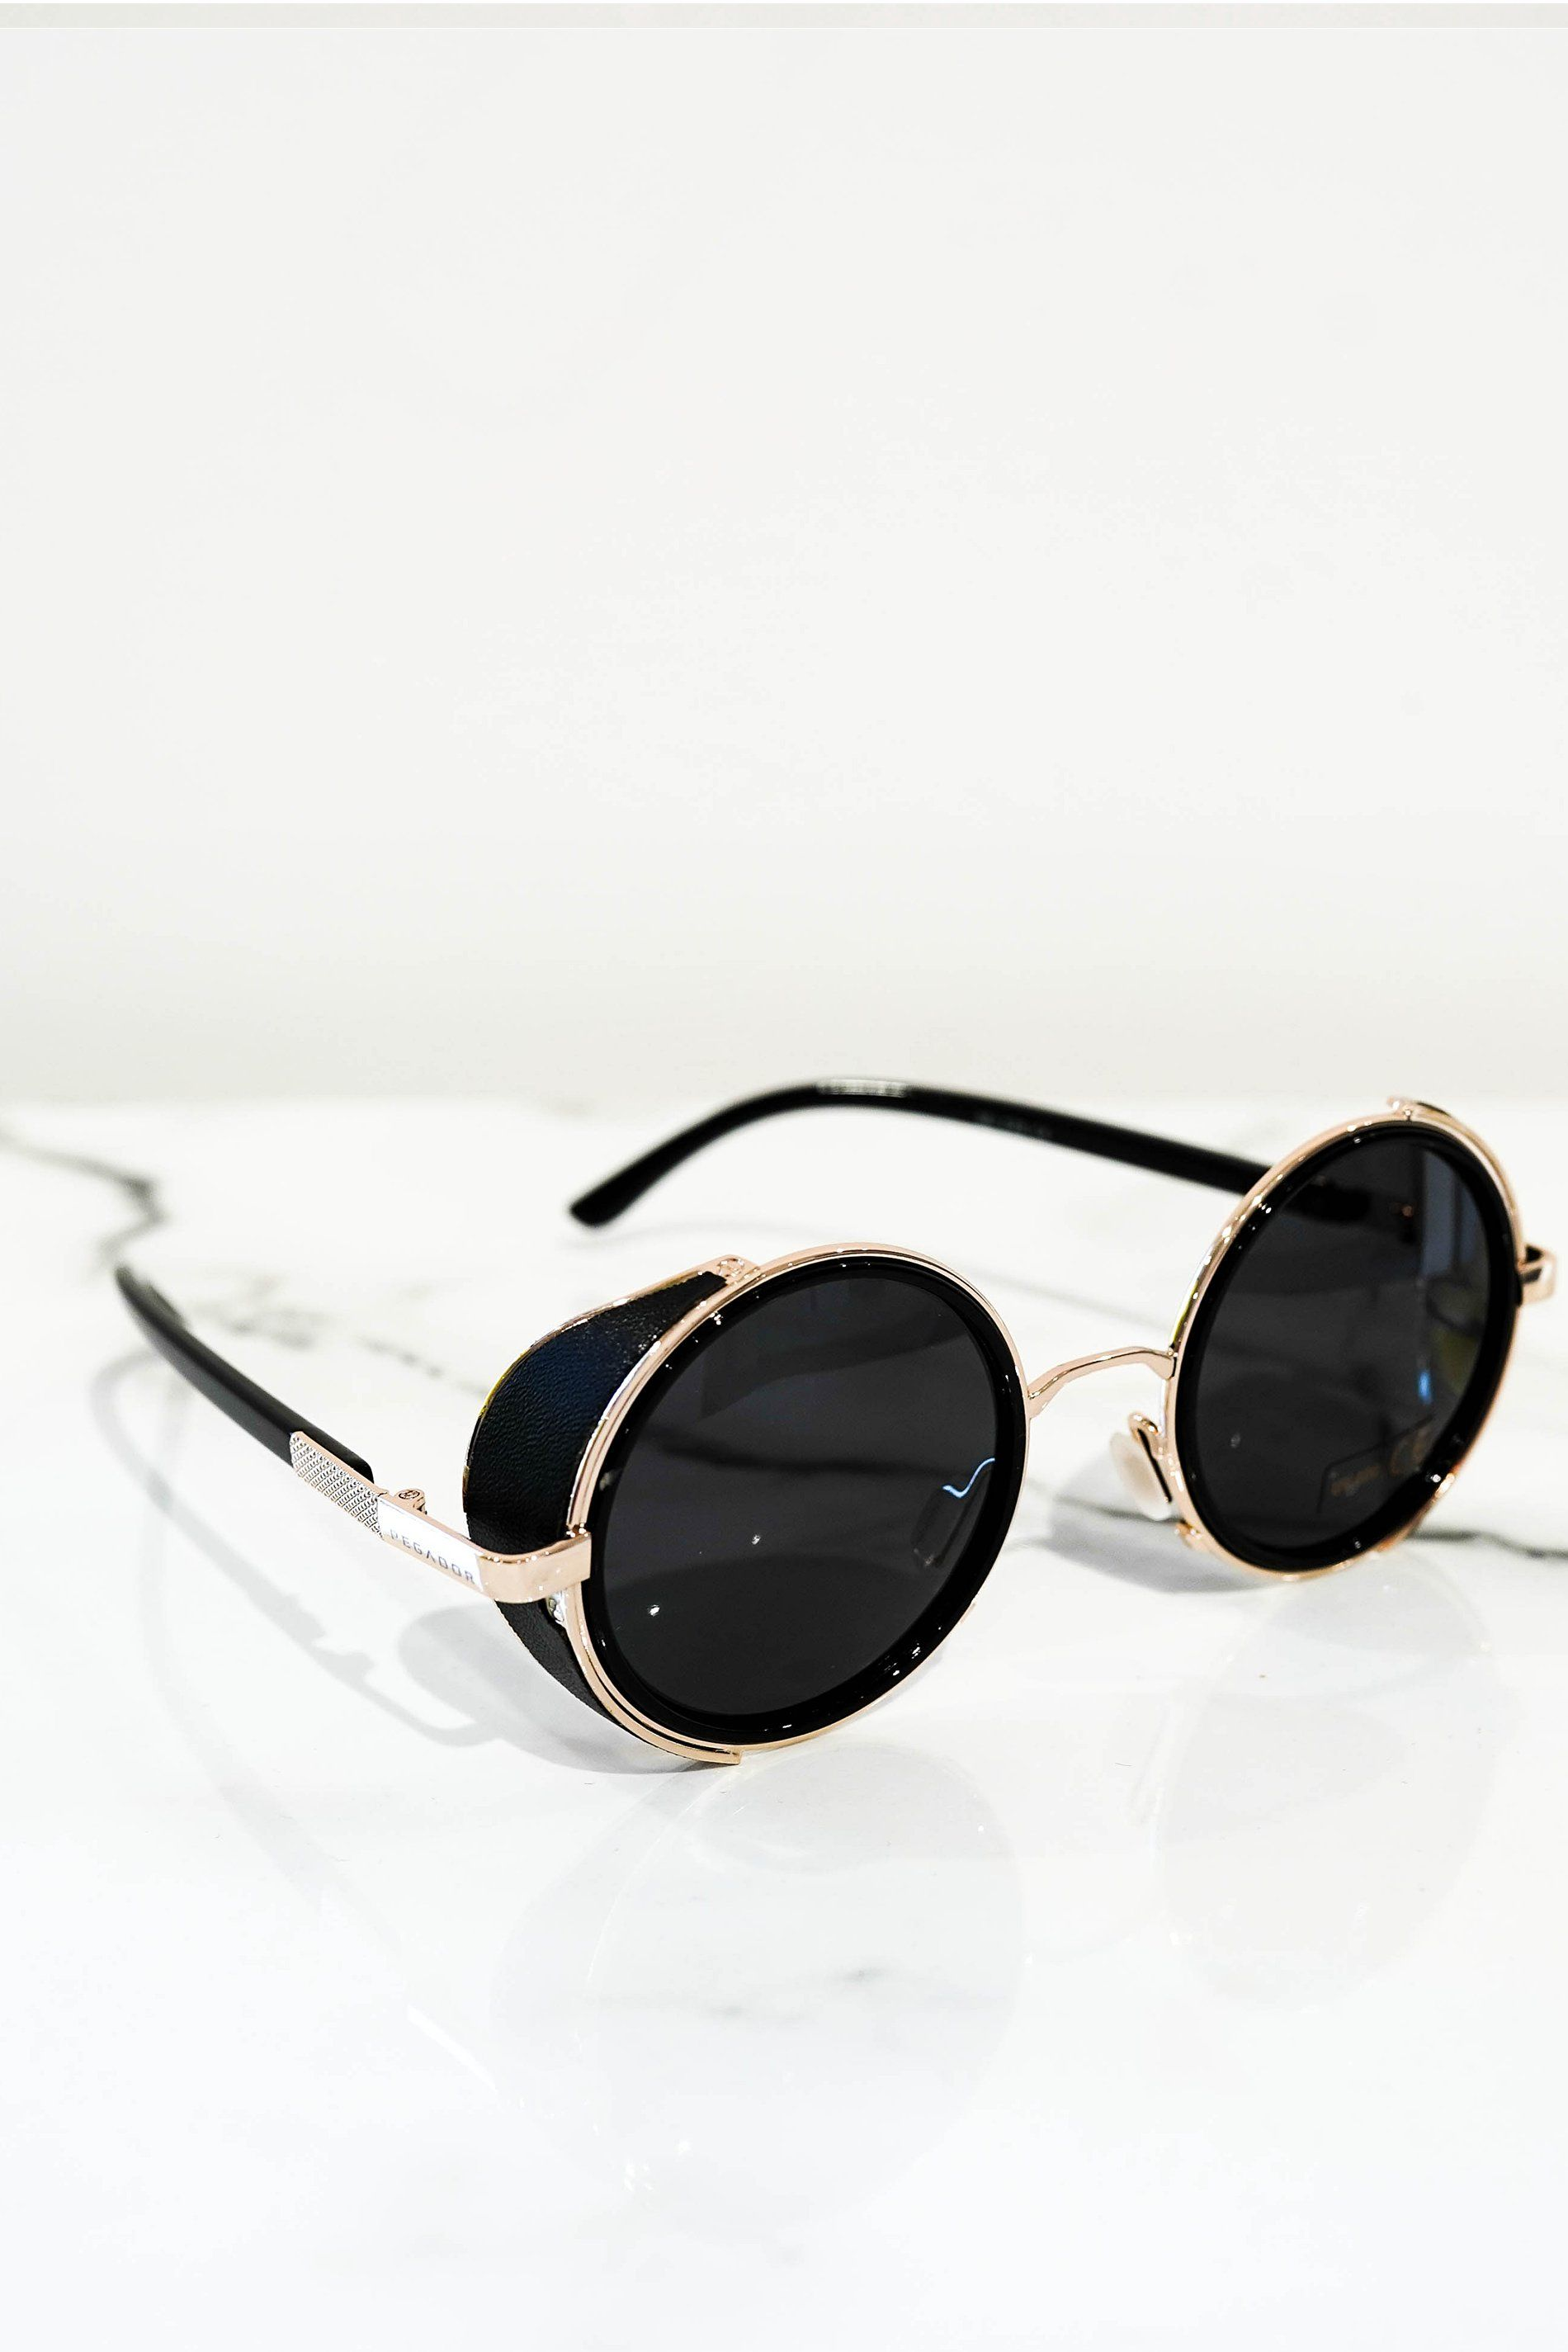 Steampunk sunglasses gold With dark lens - PEGADOR - Dominate the Hype